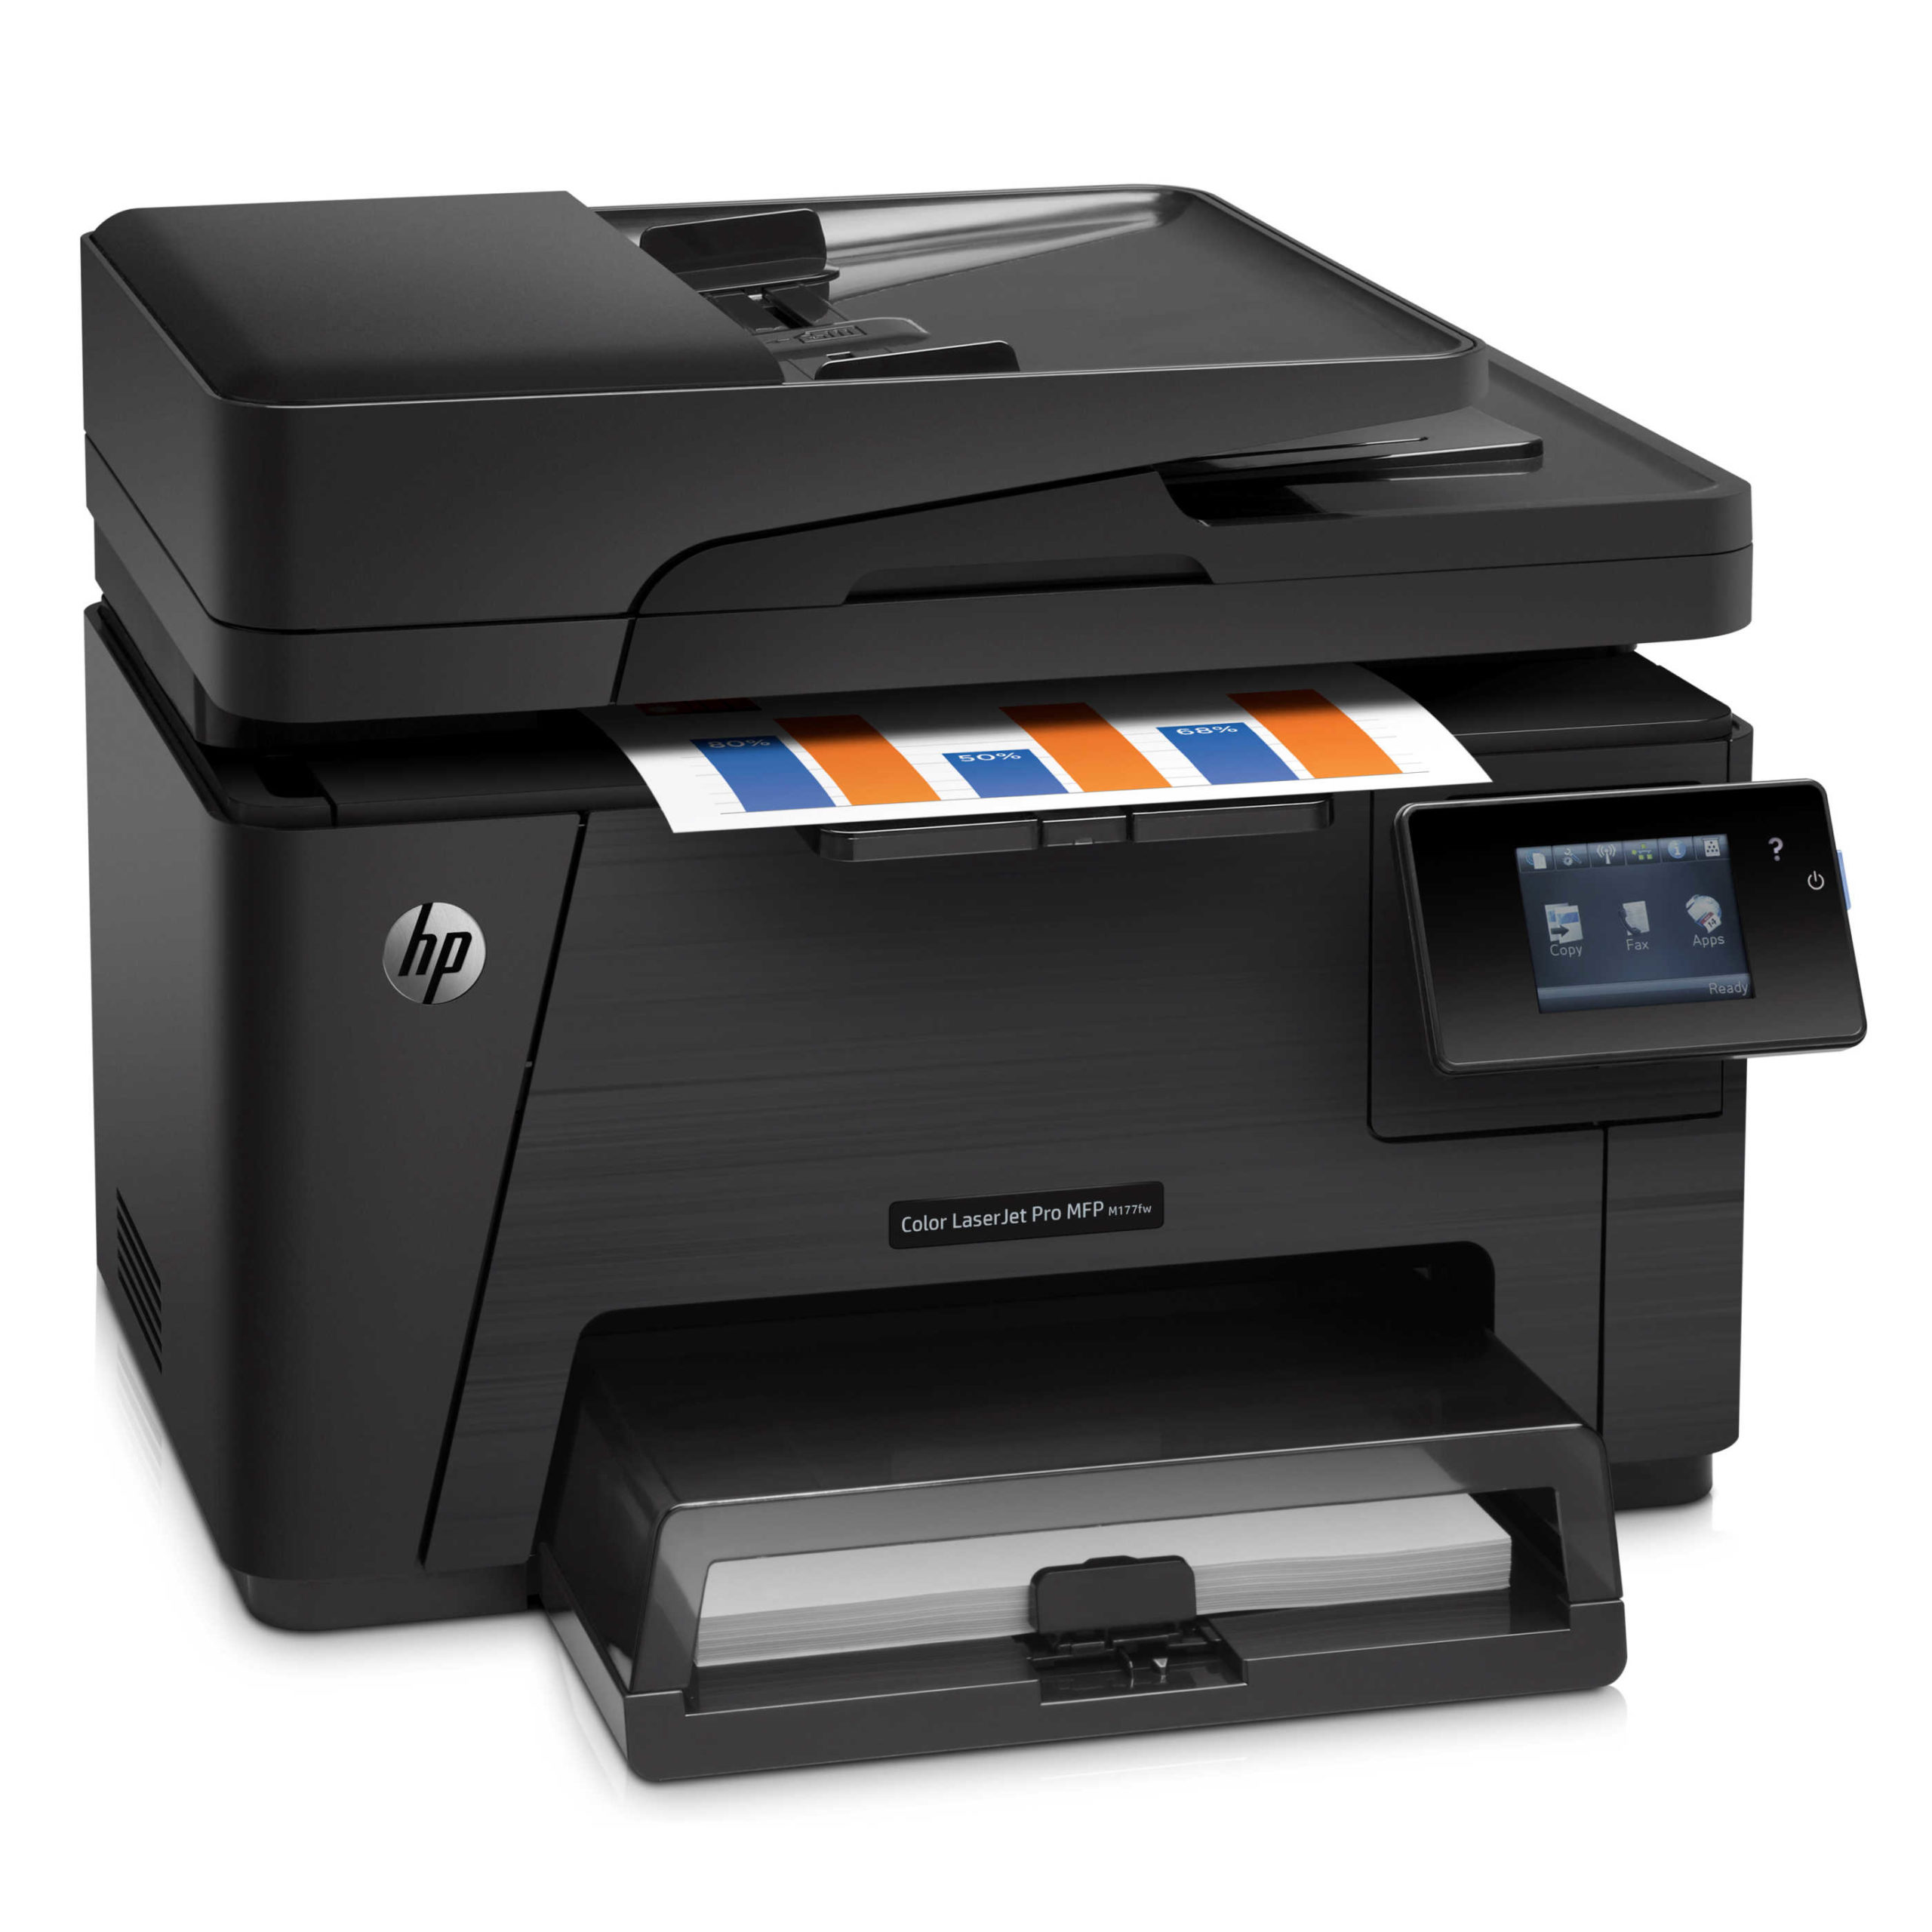 hp color laserjet pro 4in1 mfp m177fw nur 229 statt 29590 scaled